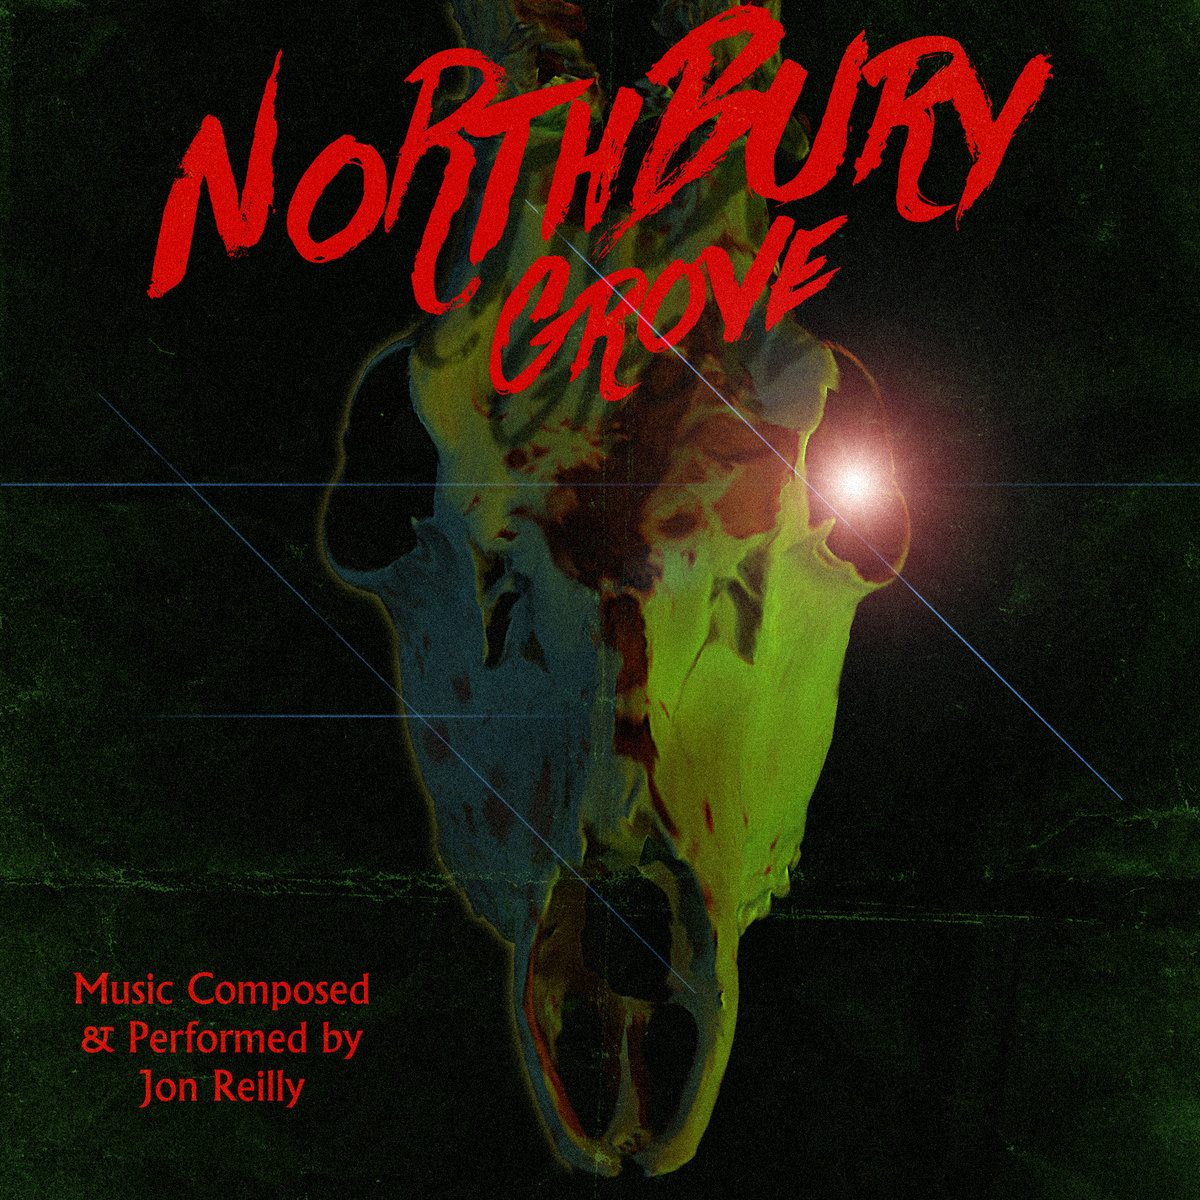 Northbury Grove Original Soundtrack